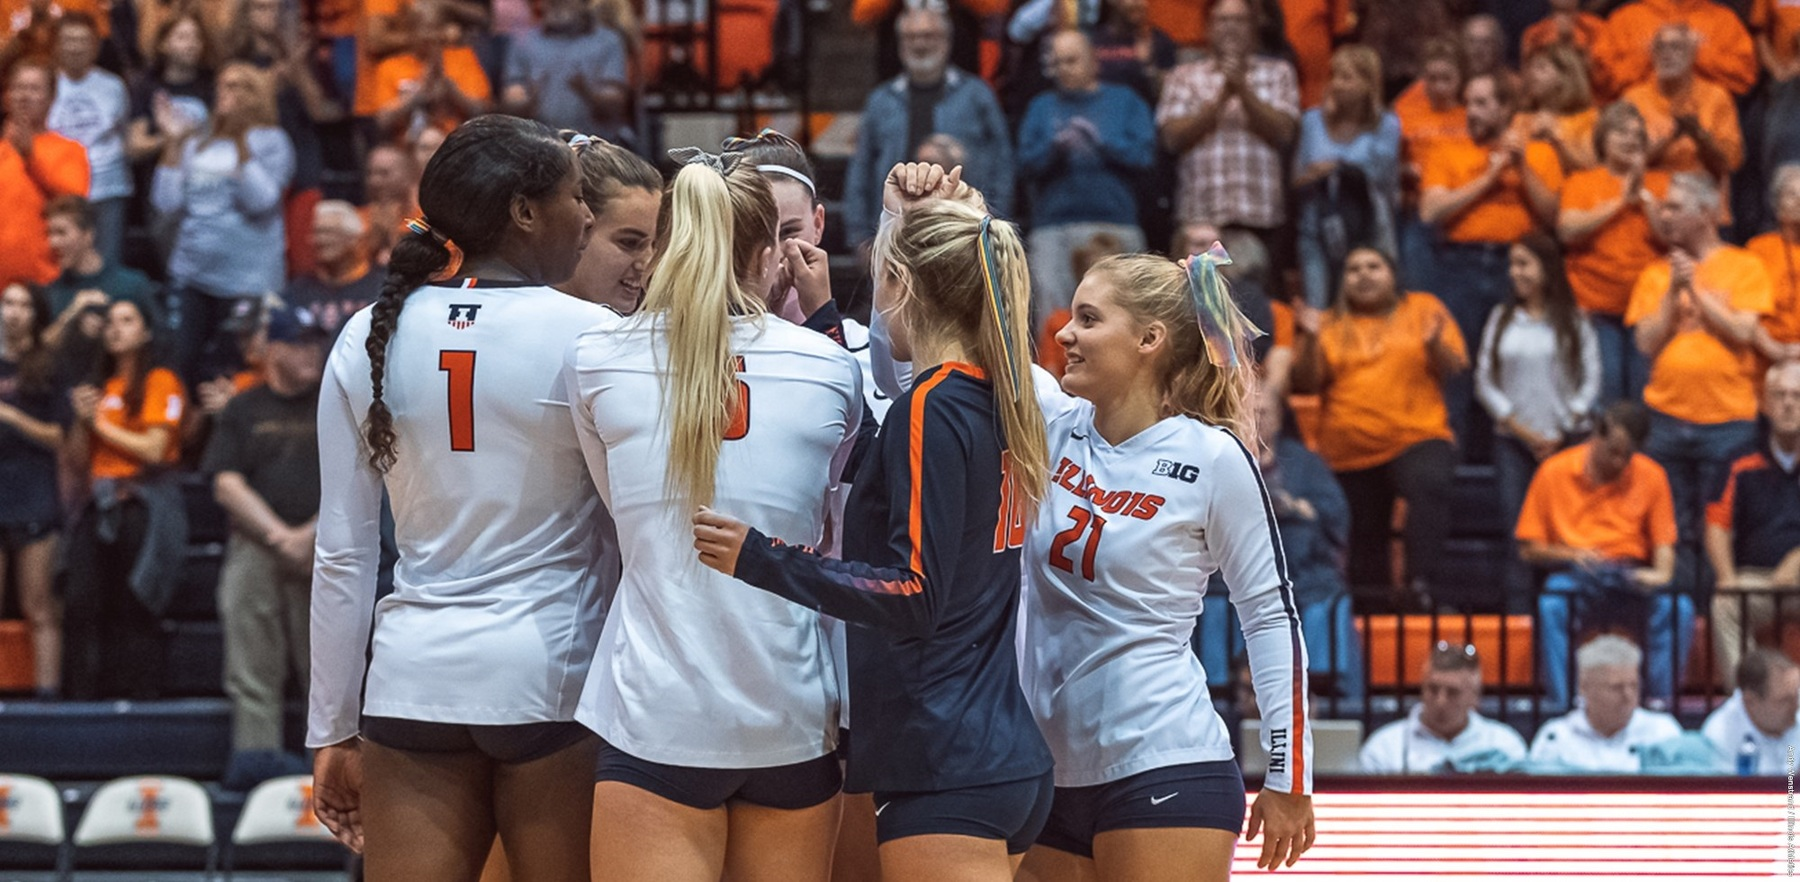 Illini volleyball players huddle on court